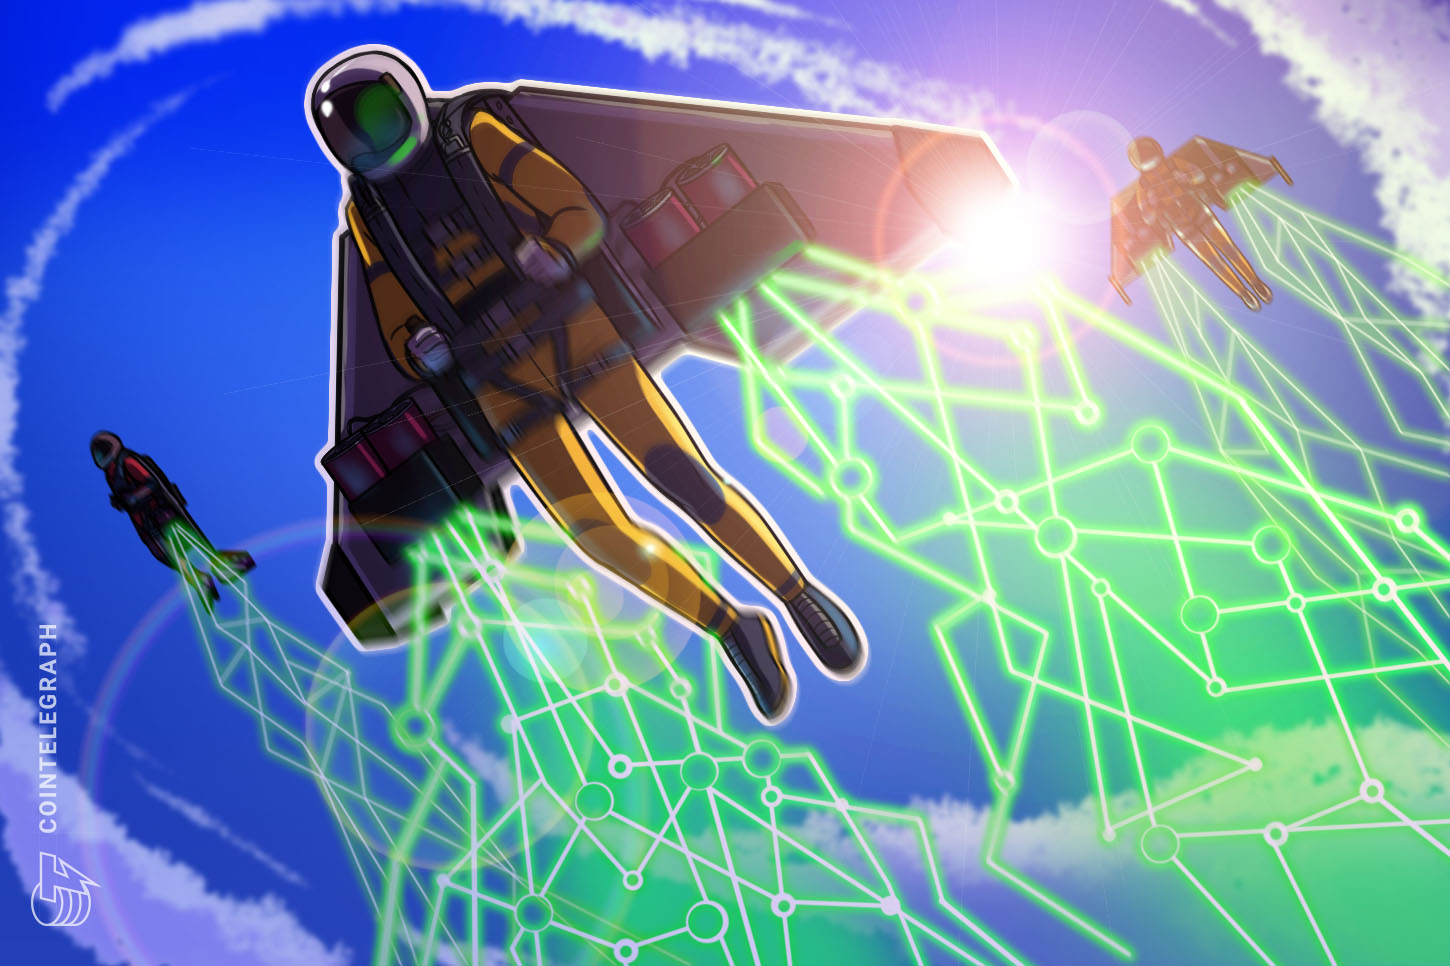 Hegic, Loopring, and FTX Token surge higher as Bitcoin price recovers